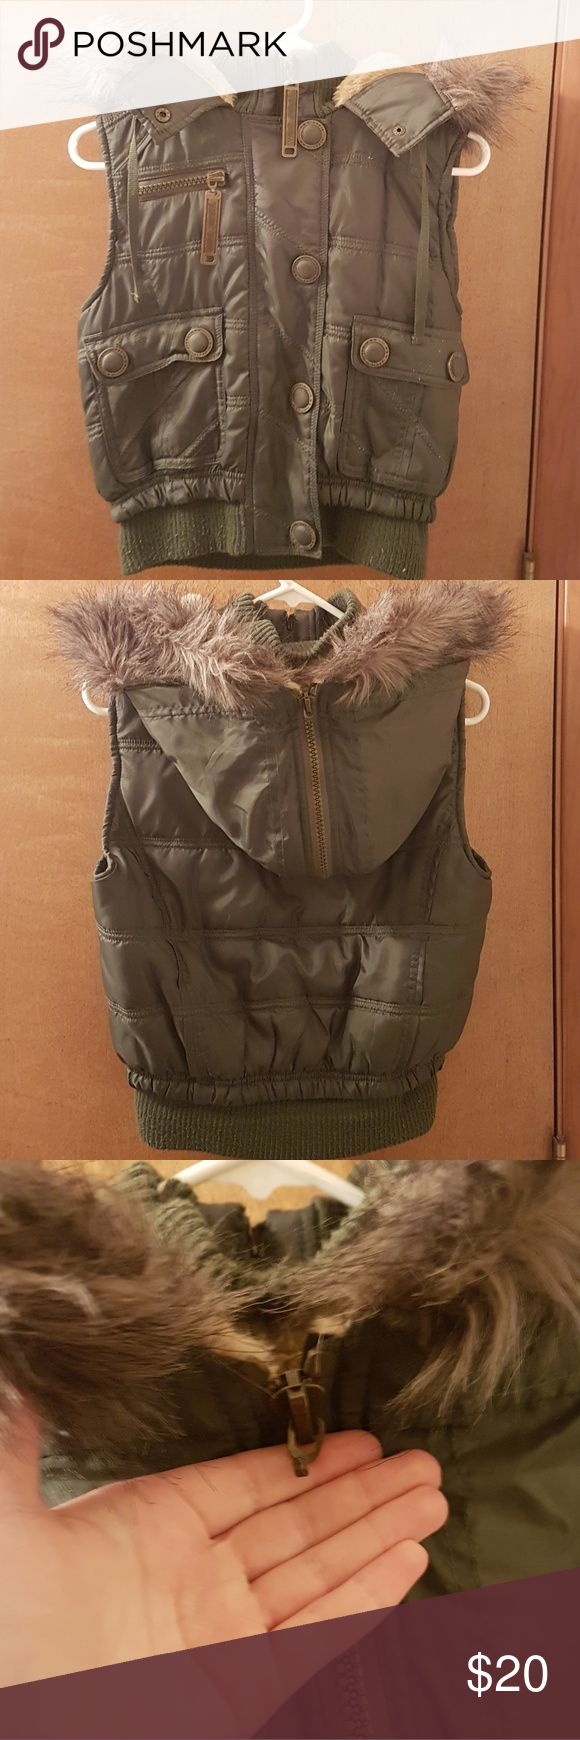 Wet Seal olive green puffy vest Wet Seal olive green puffy vest in GREAT condition only flaw is the missing zipper on the hood Wet Seal Jackets & Coats